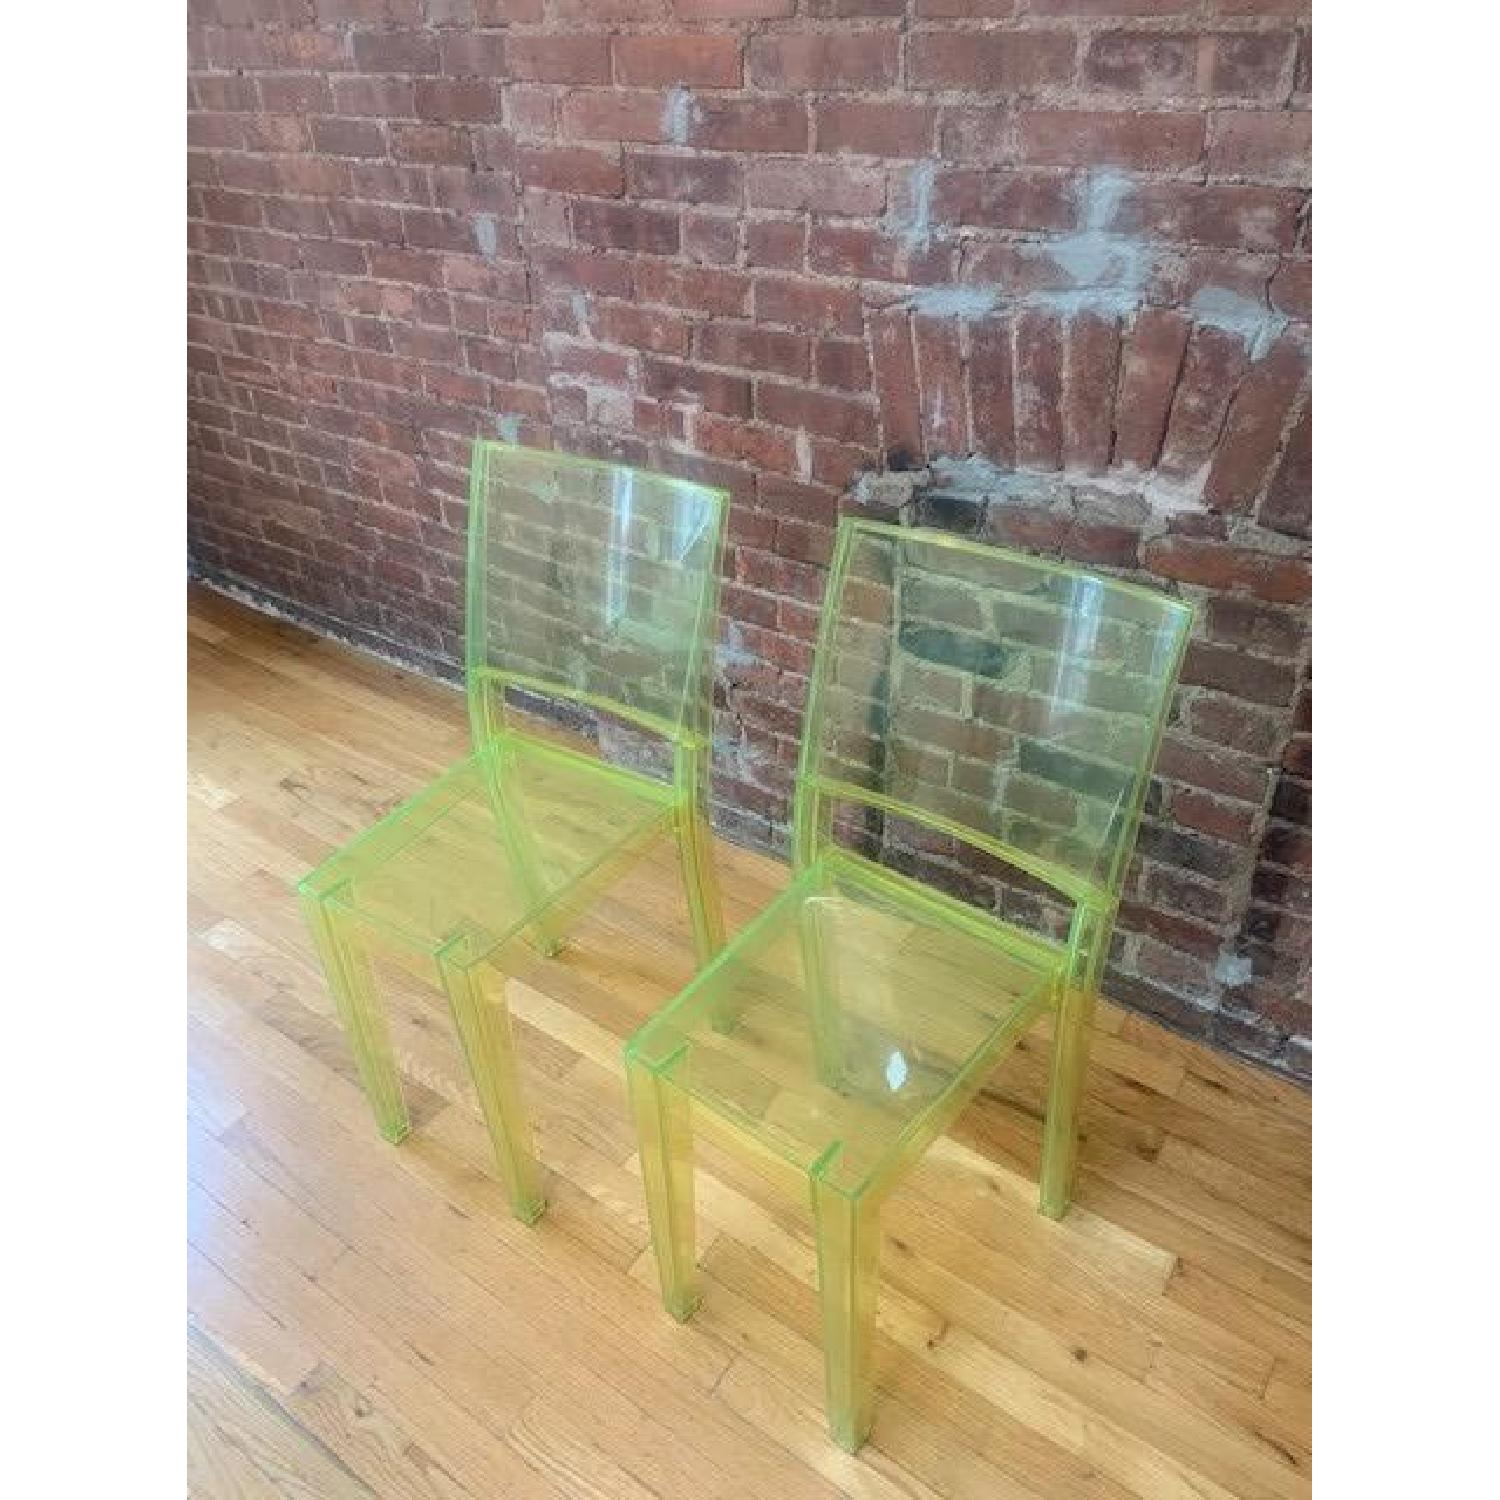 Kartell Green Acrylic Stackable Chairs - image-2